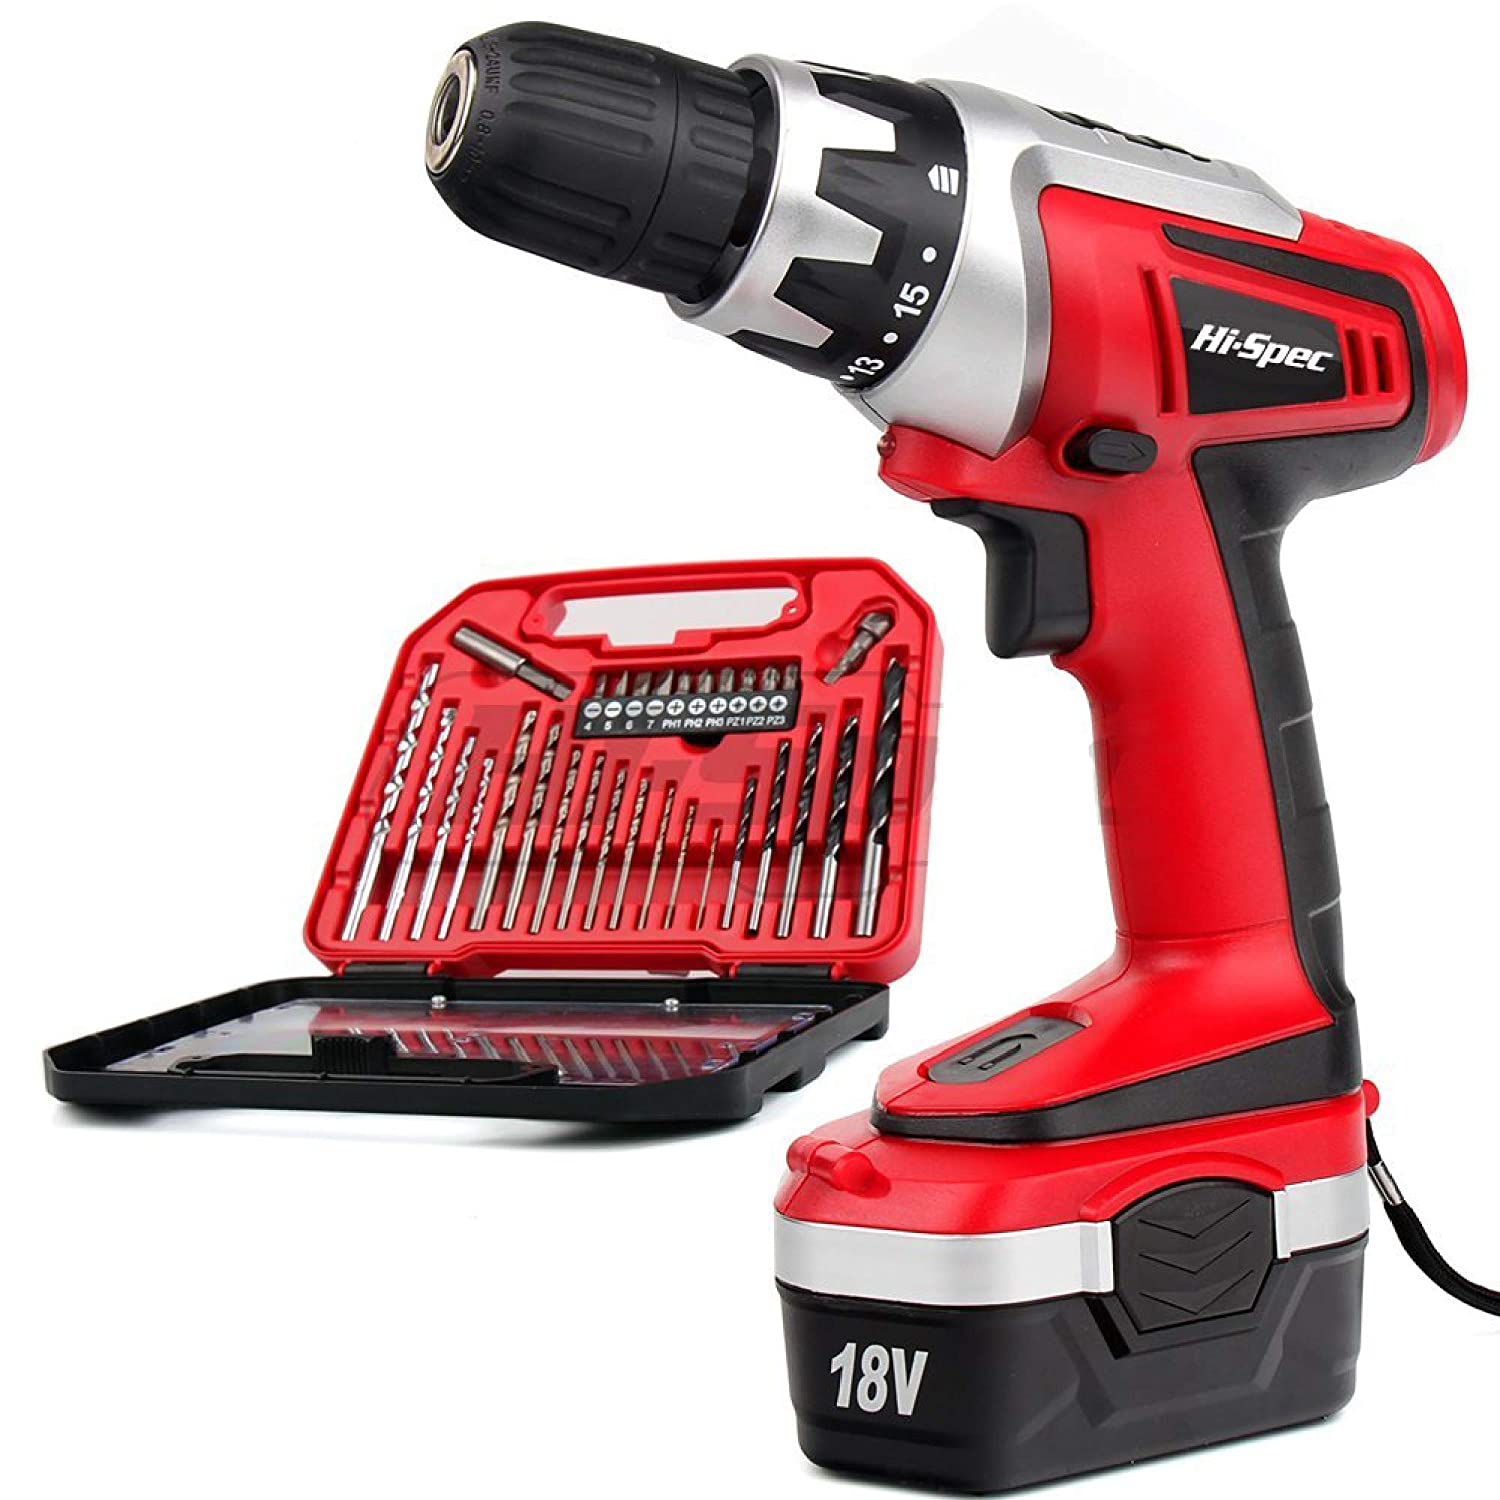 Hi-Spec 8V Cordless Drill Screwdriver with 1300mAh Lithium-Ion Battery, 15+1 Position Keyless Chuck, Variable Speed Trigger, 10N.m LED and 38pc HSS Drill and Screw Bit Drill Driver Power Tool Set Hi-Spec Products